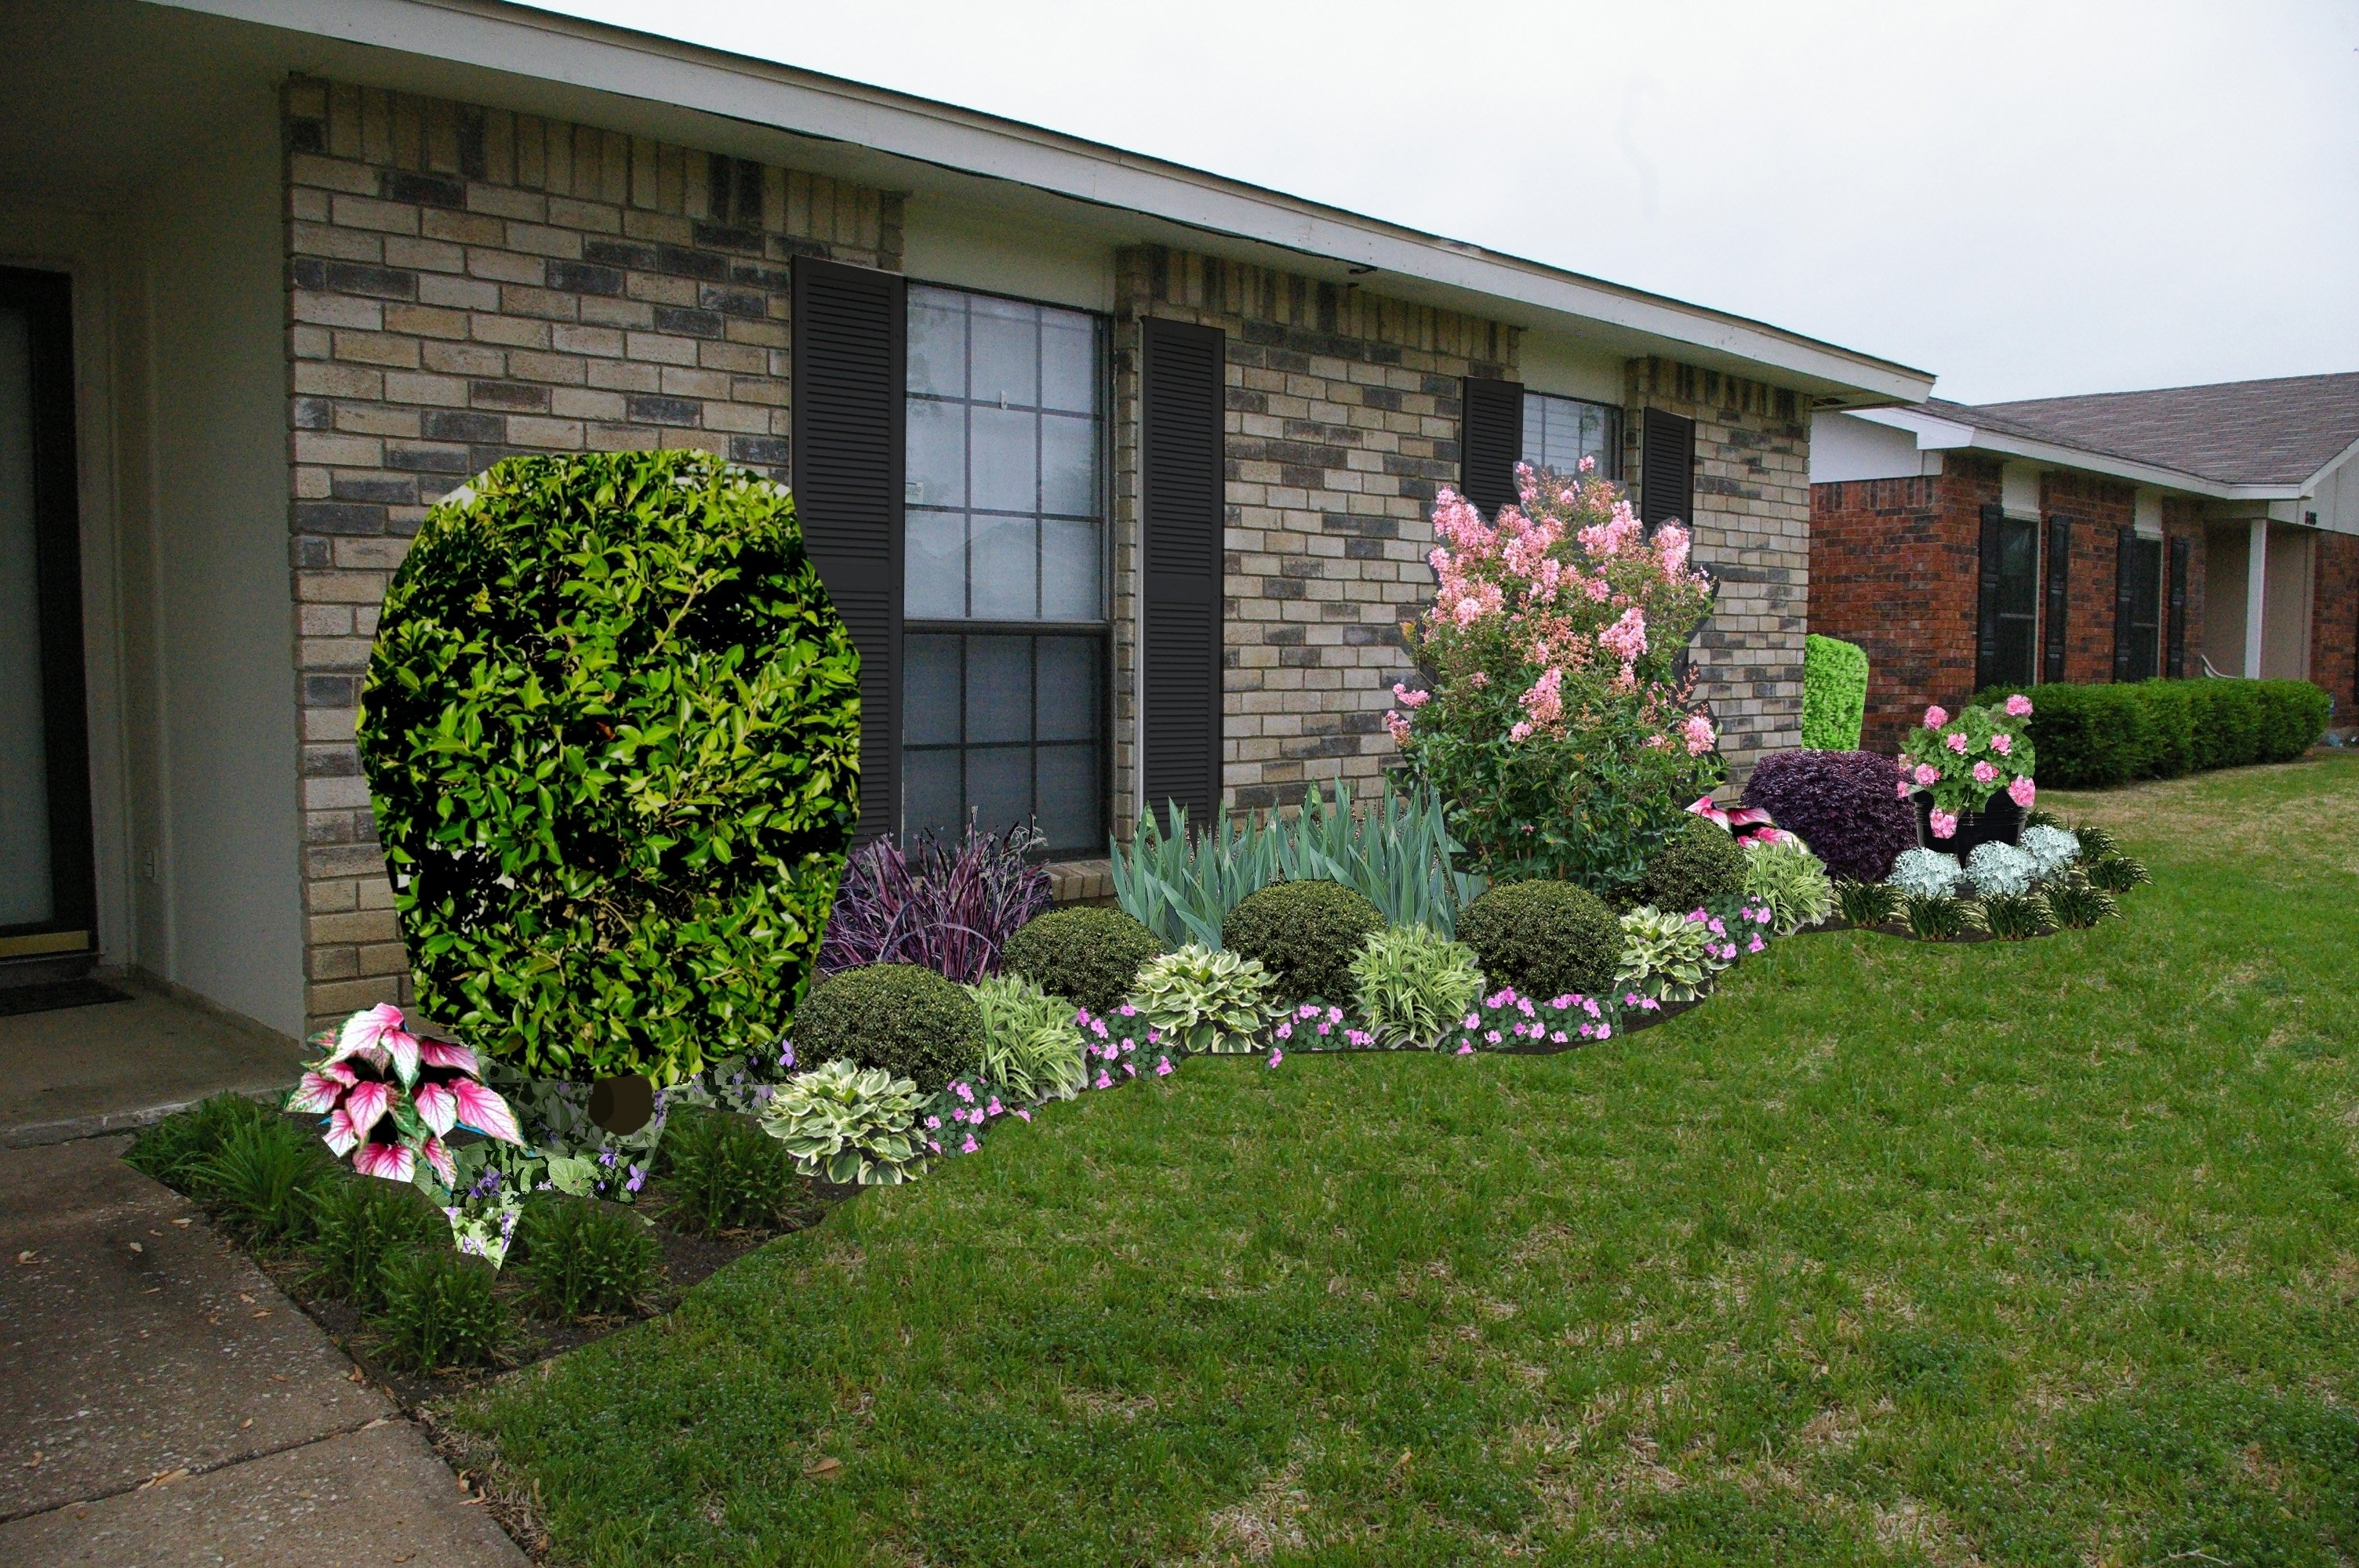 10 Most Recommended Landscape Ideas For Front Yard garden front yard landscaping ideas front yard landscape ideas 2021